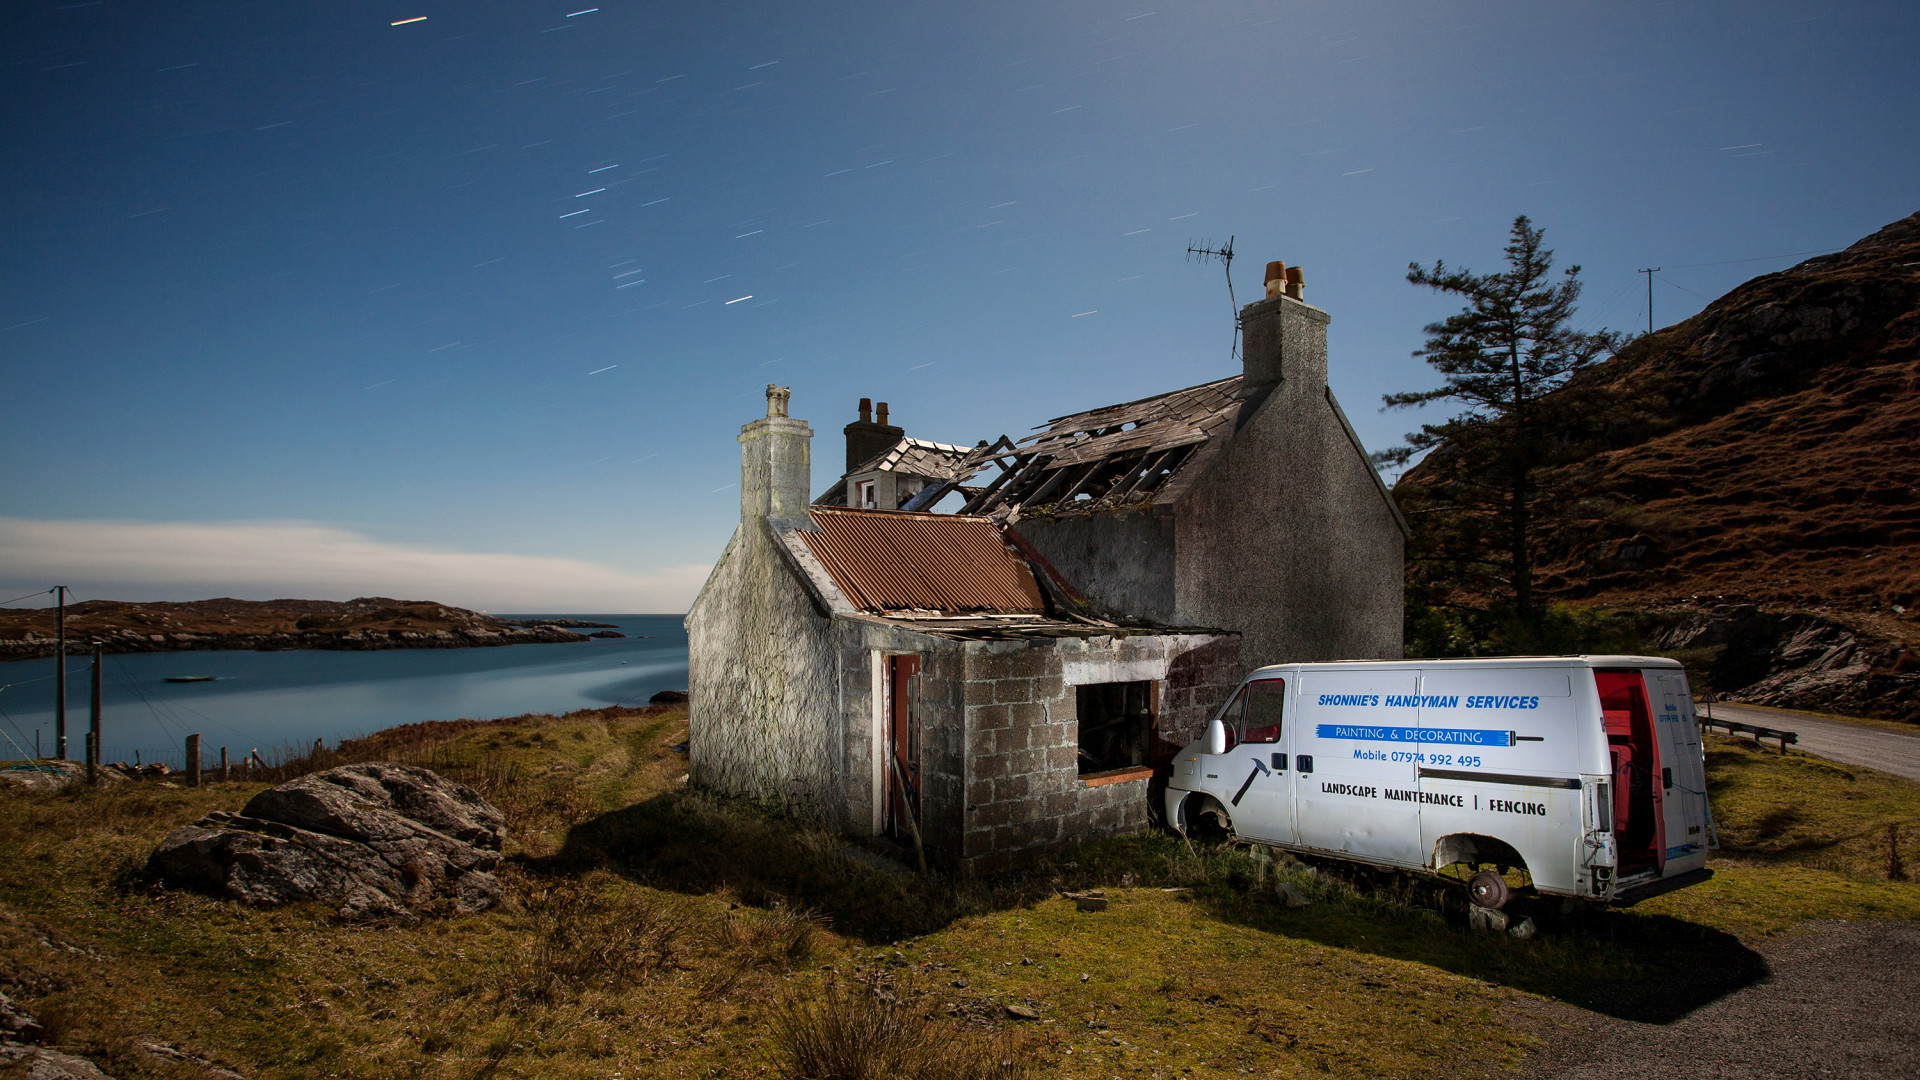 An abandoned house and van in Scotland